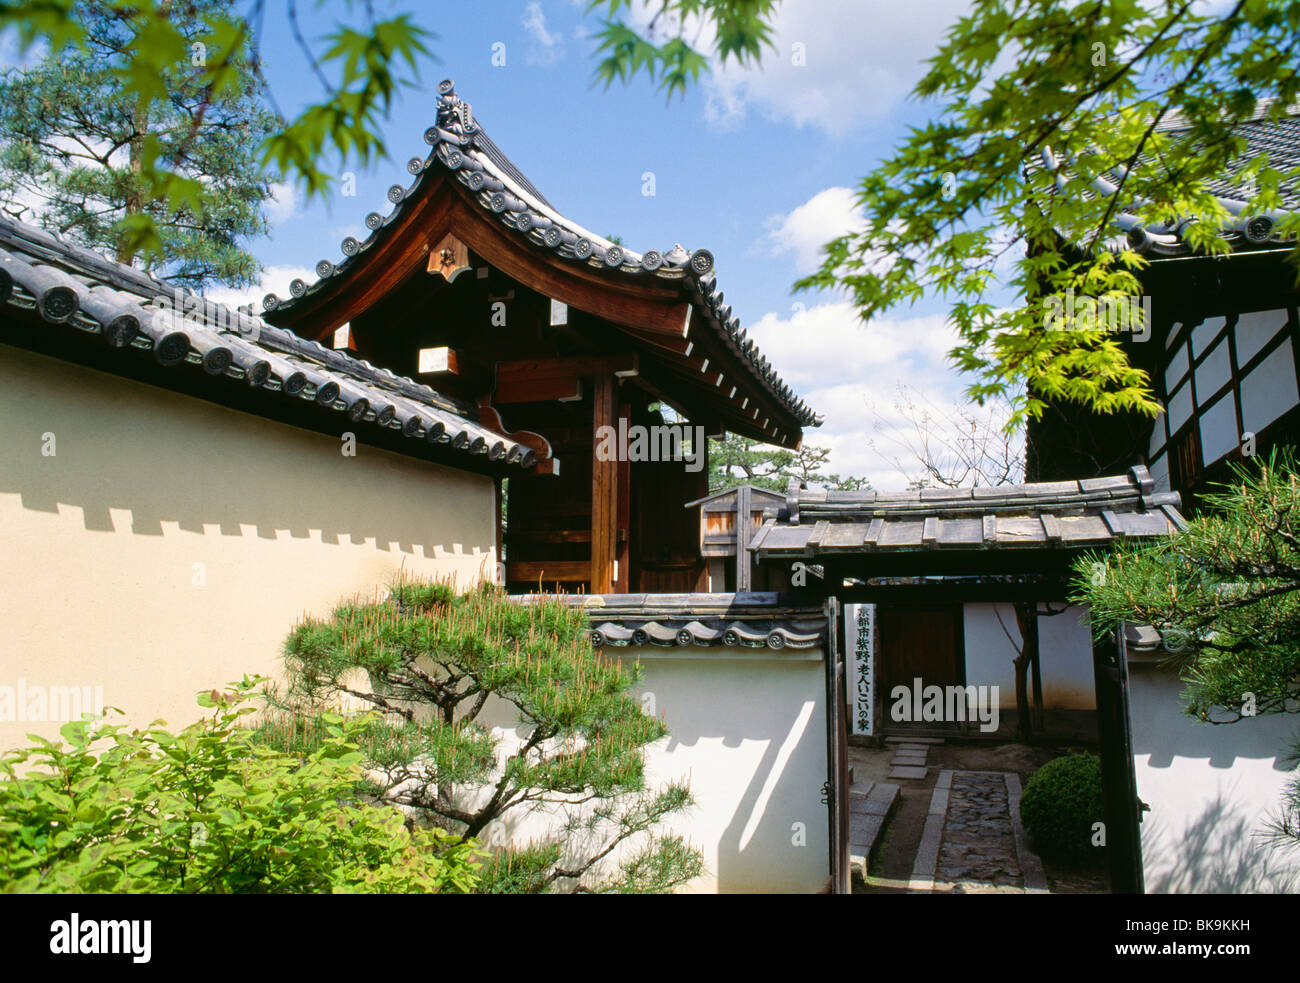 Entrance to Japanese cemetery - Stock Image